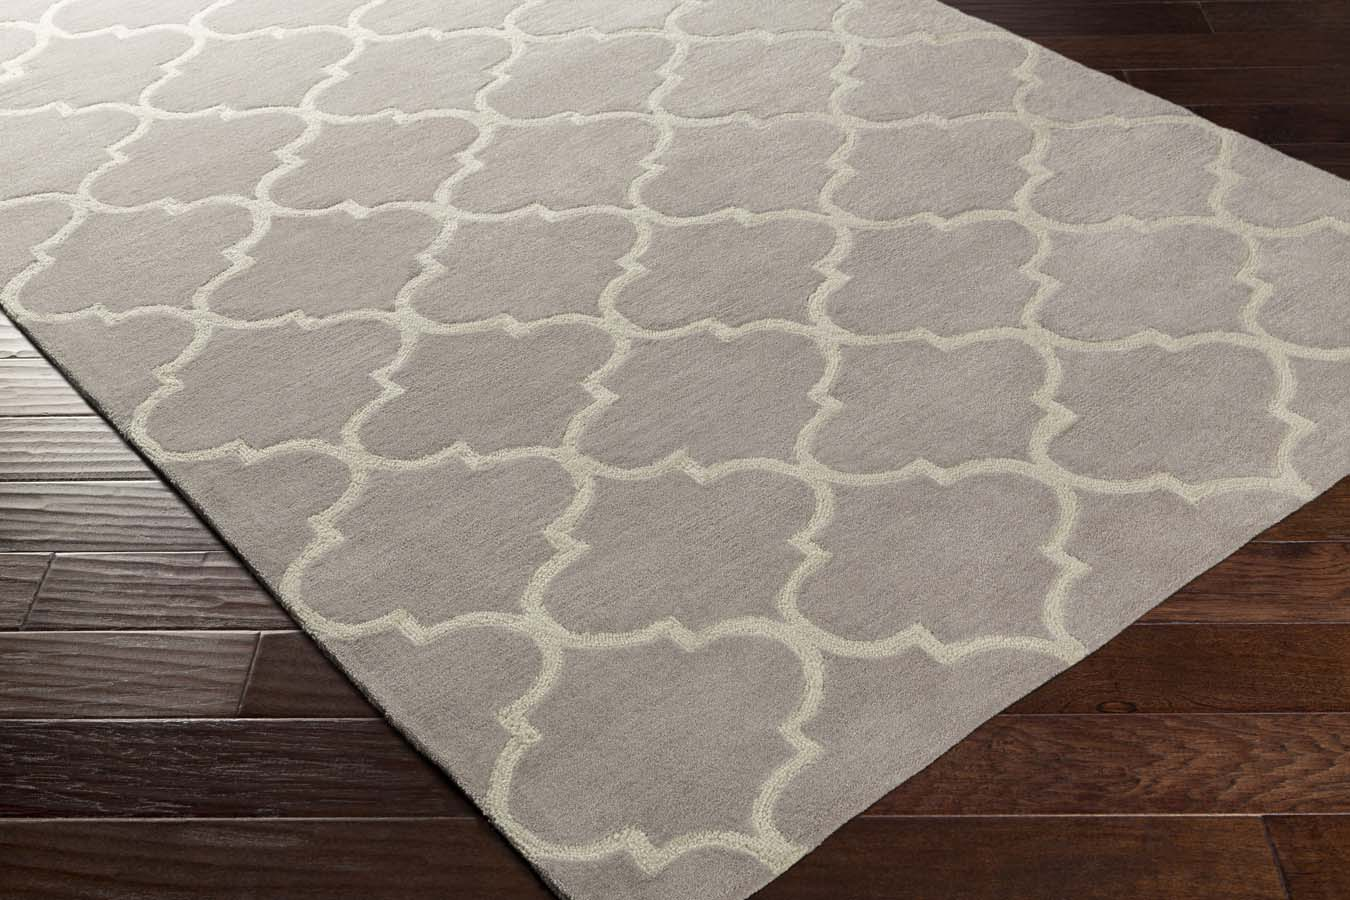 Artistic Weavers Holden AWHL-1012 Finley Beige/Ivory Rug